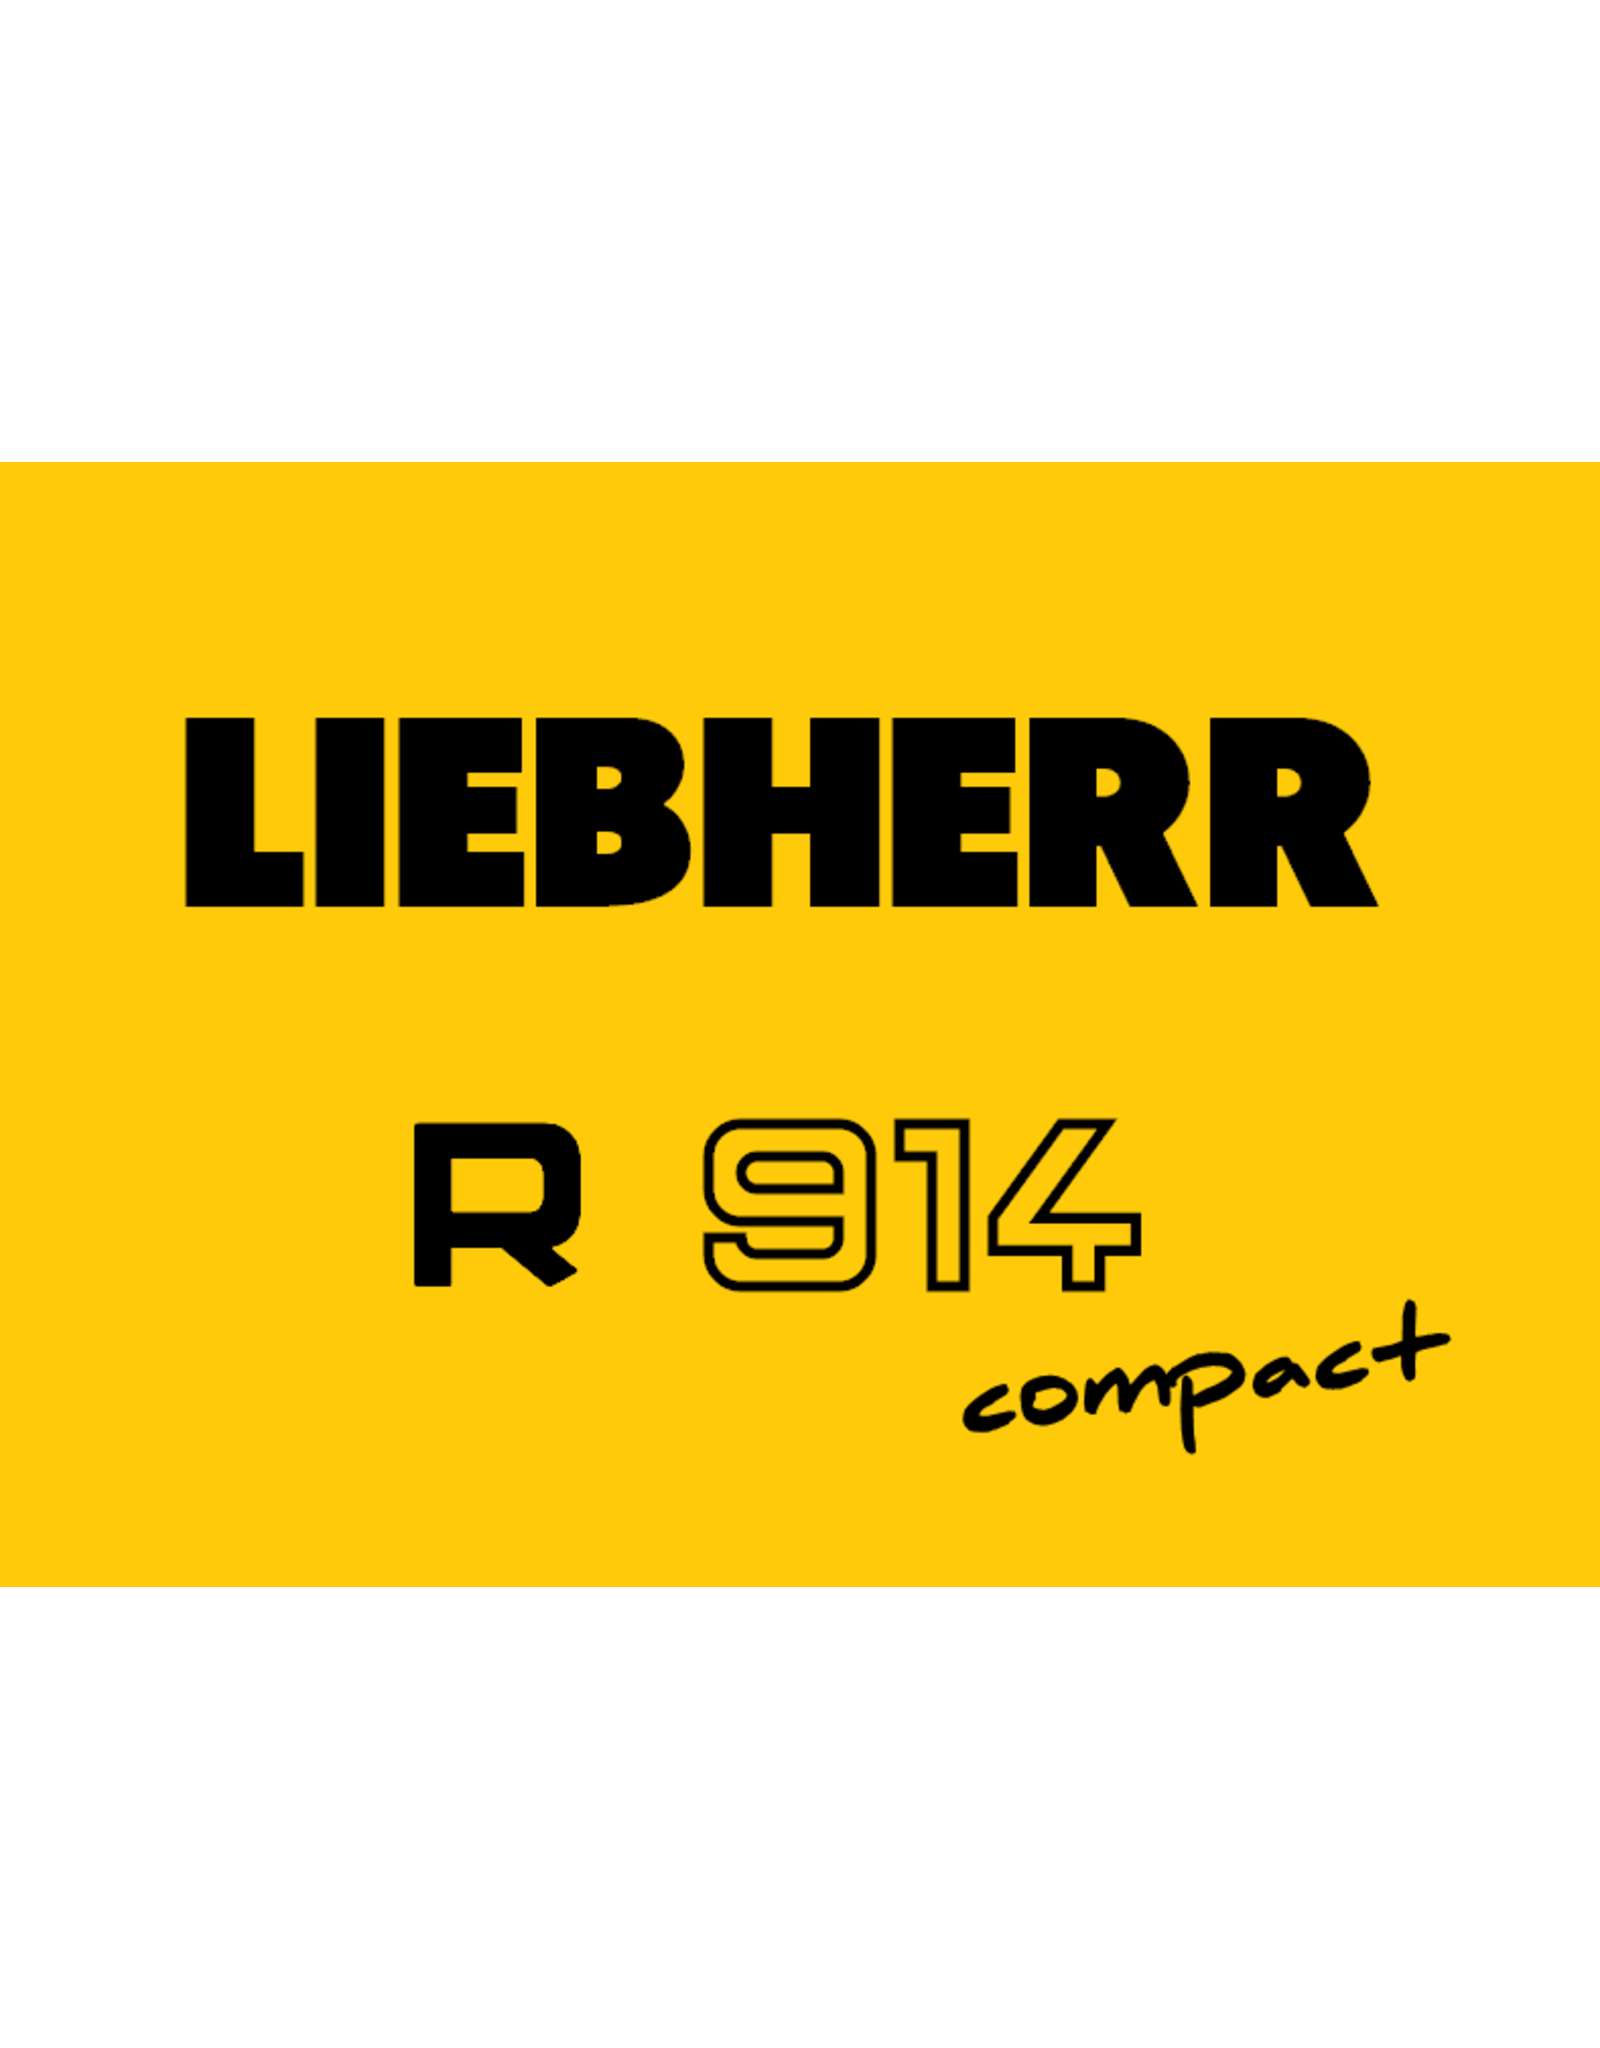 Echle Hartstahl GmbH FOPS for Liebherr R 914 Compact